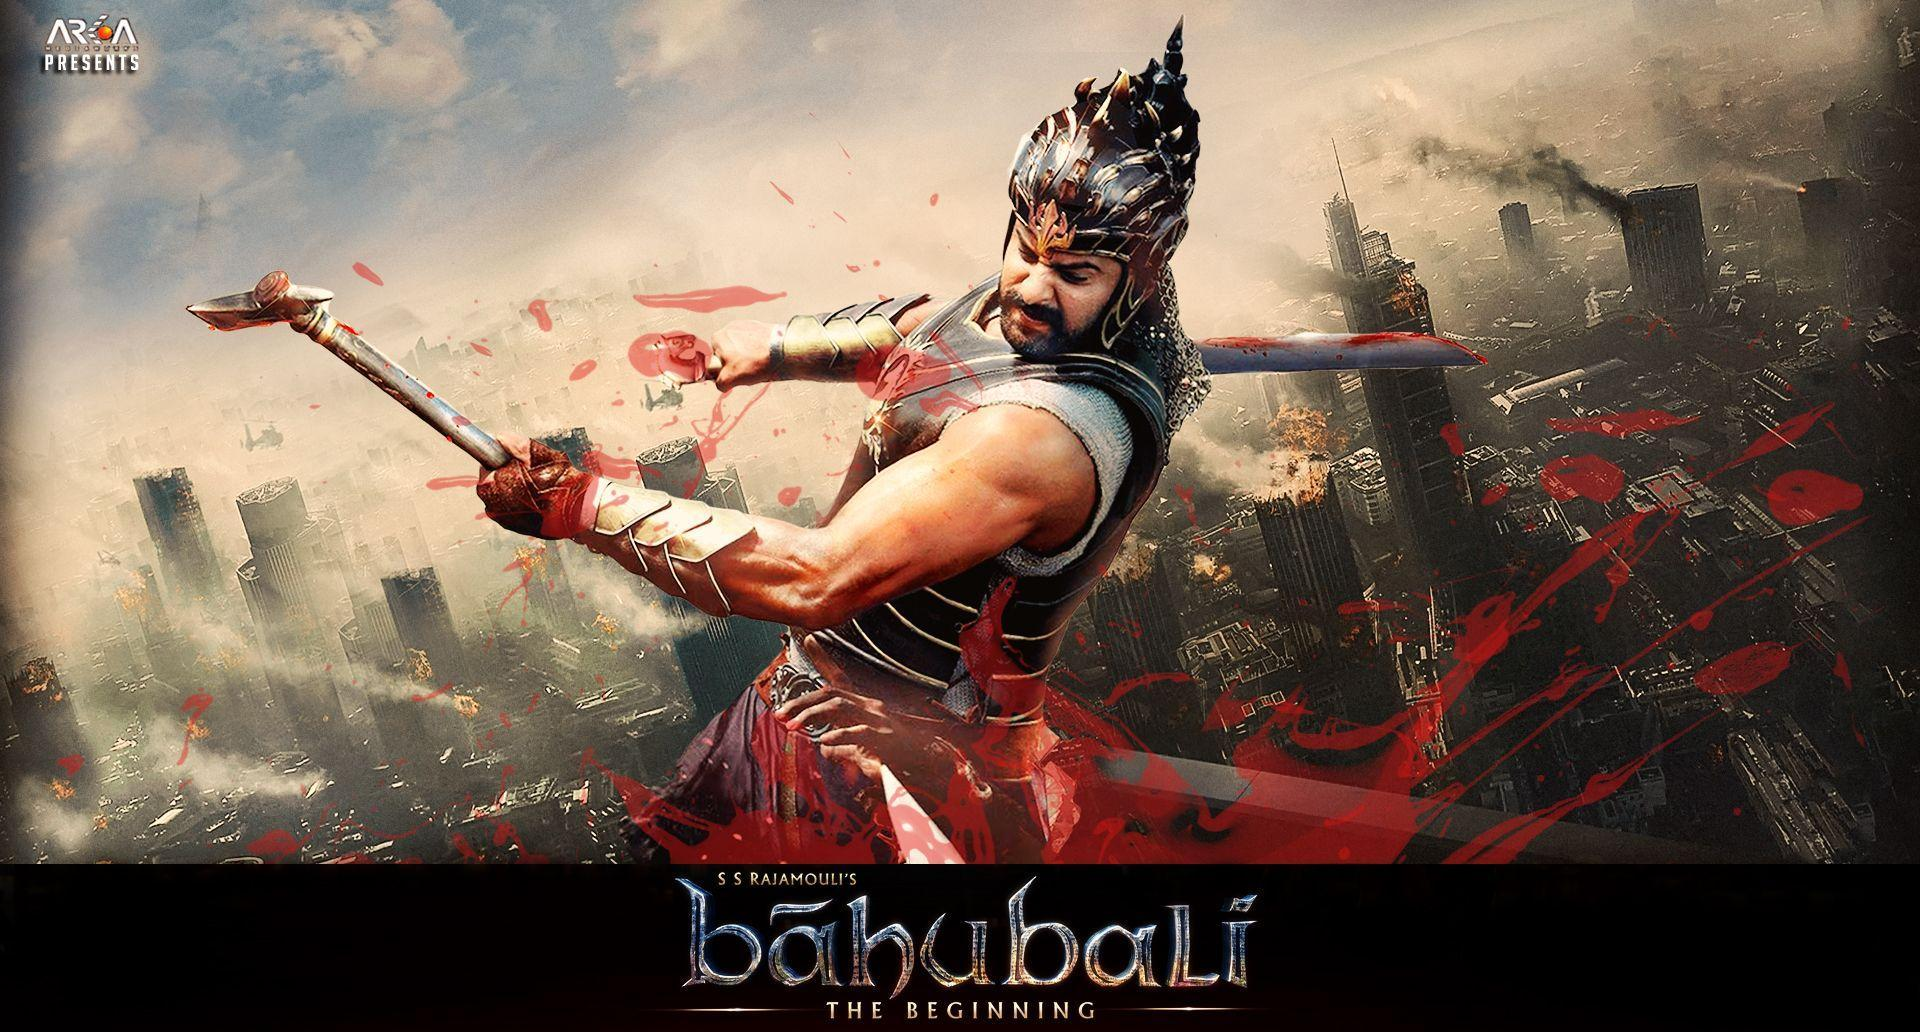 Baahubali Wallpapers - Wallpaper Cave